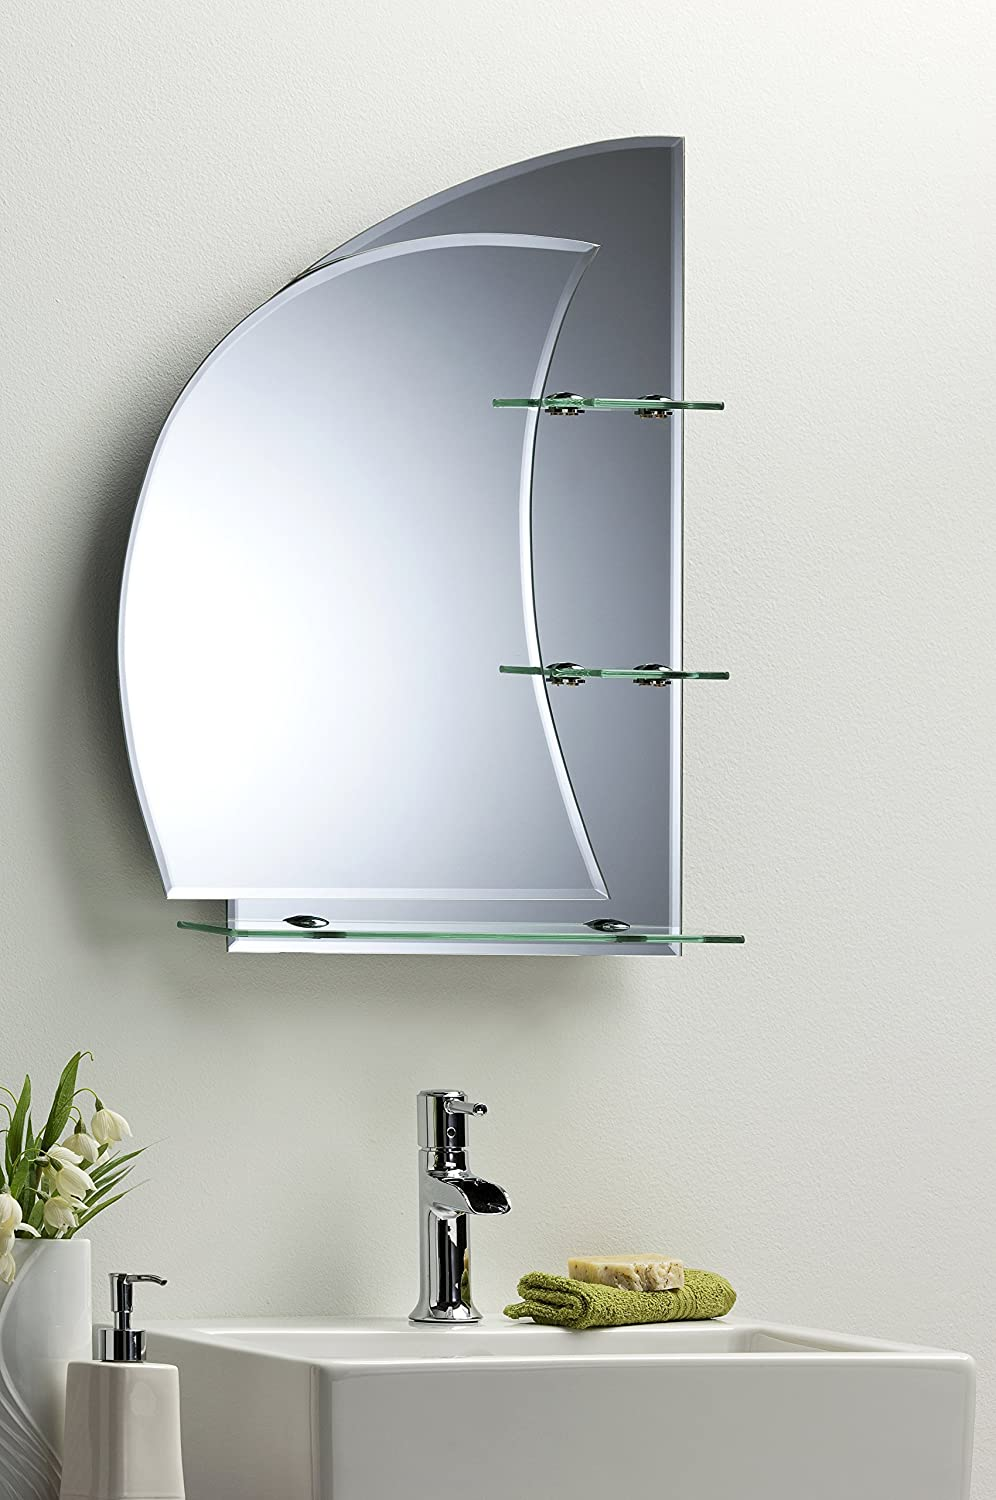 Bathroom Mirror With Shelves ~ Stunning NAUTICAL Design 70cm X 50cm ...